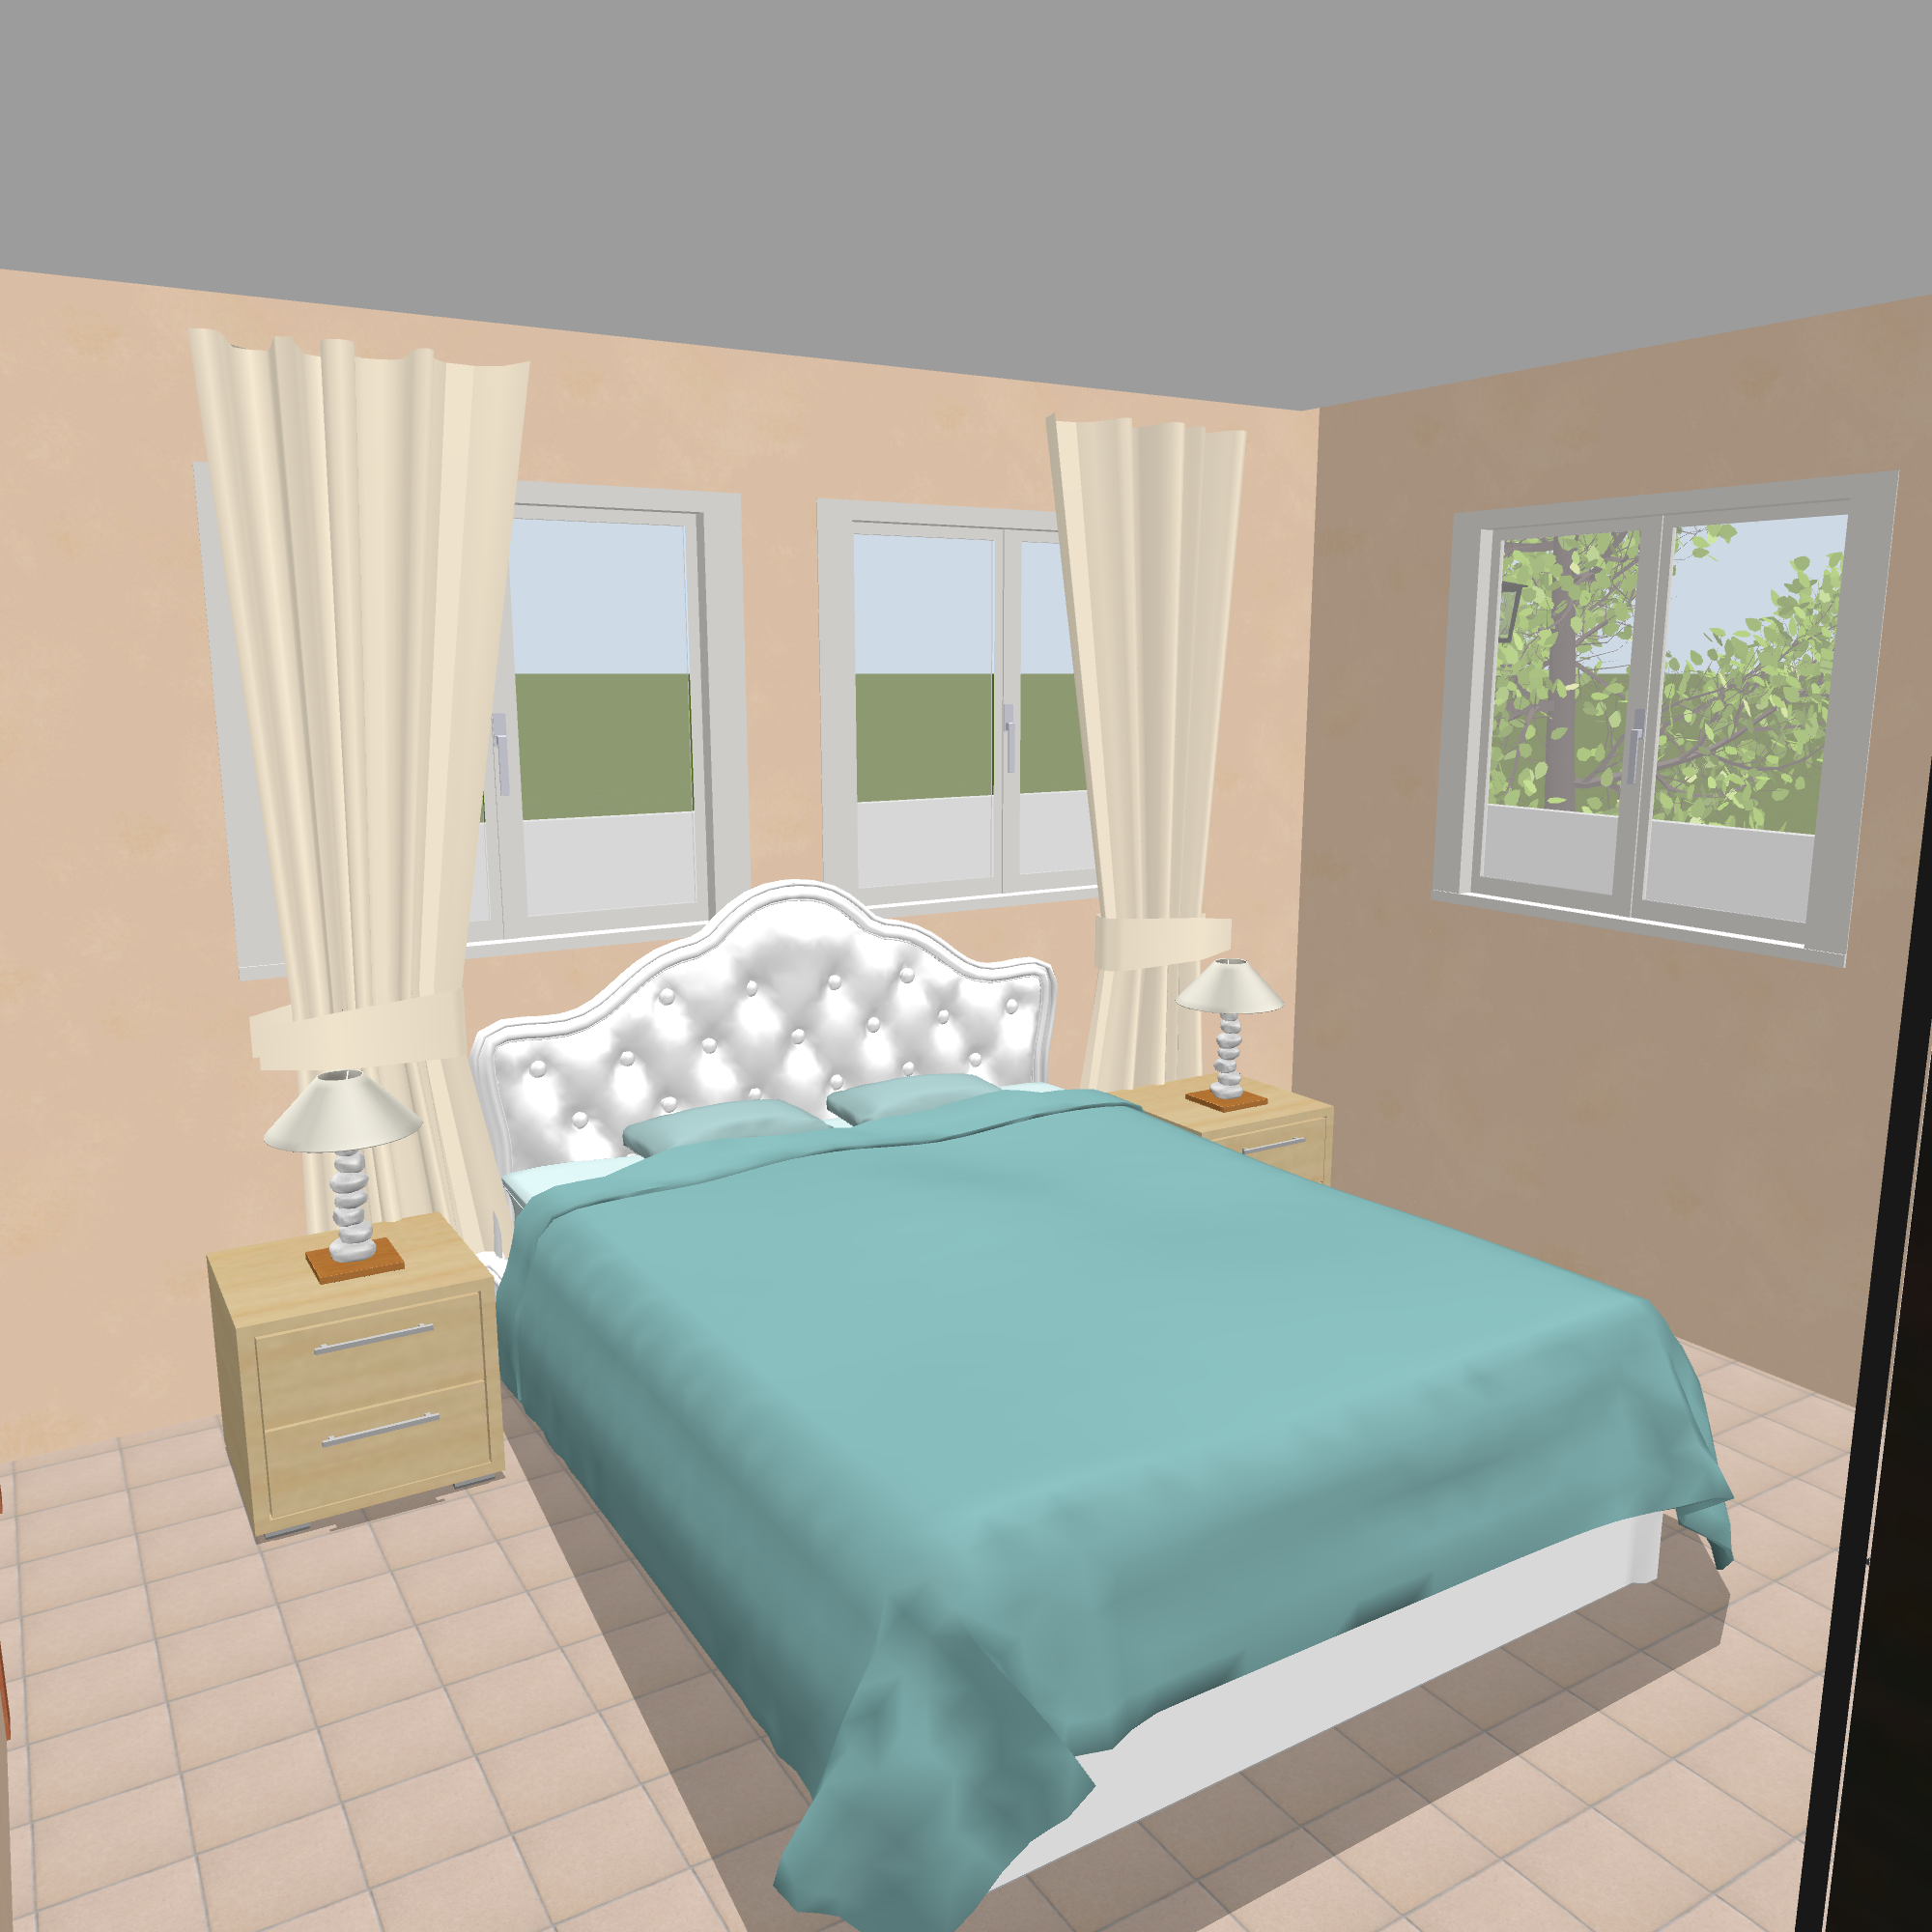 160sqm_bedroom1.png